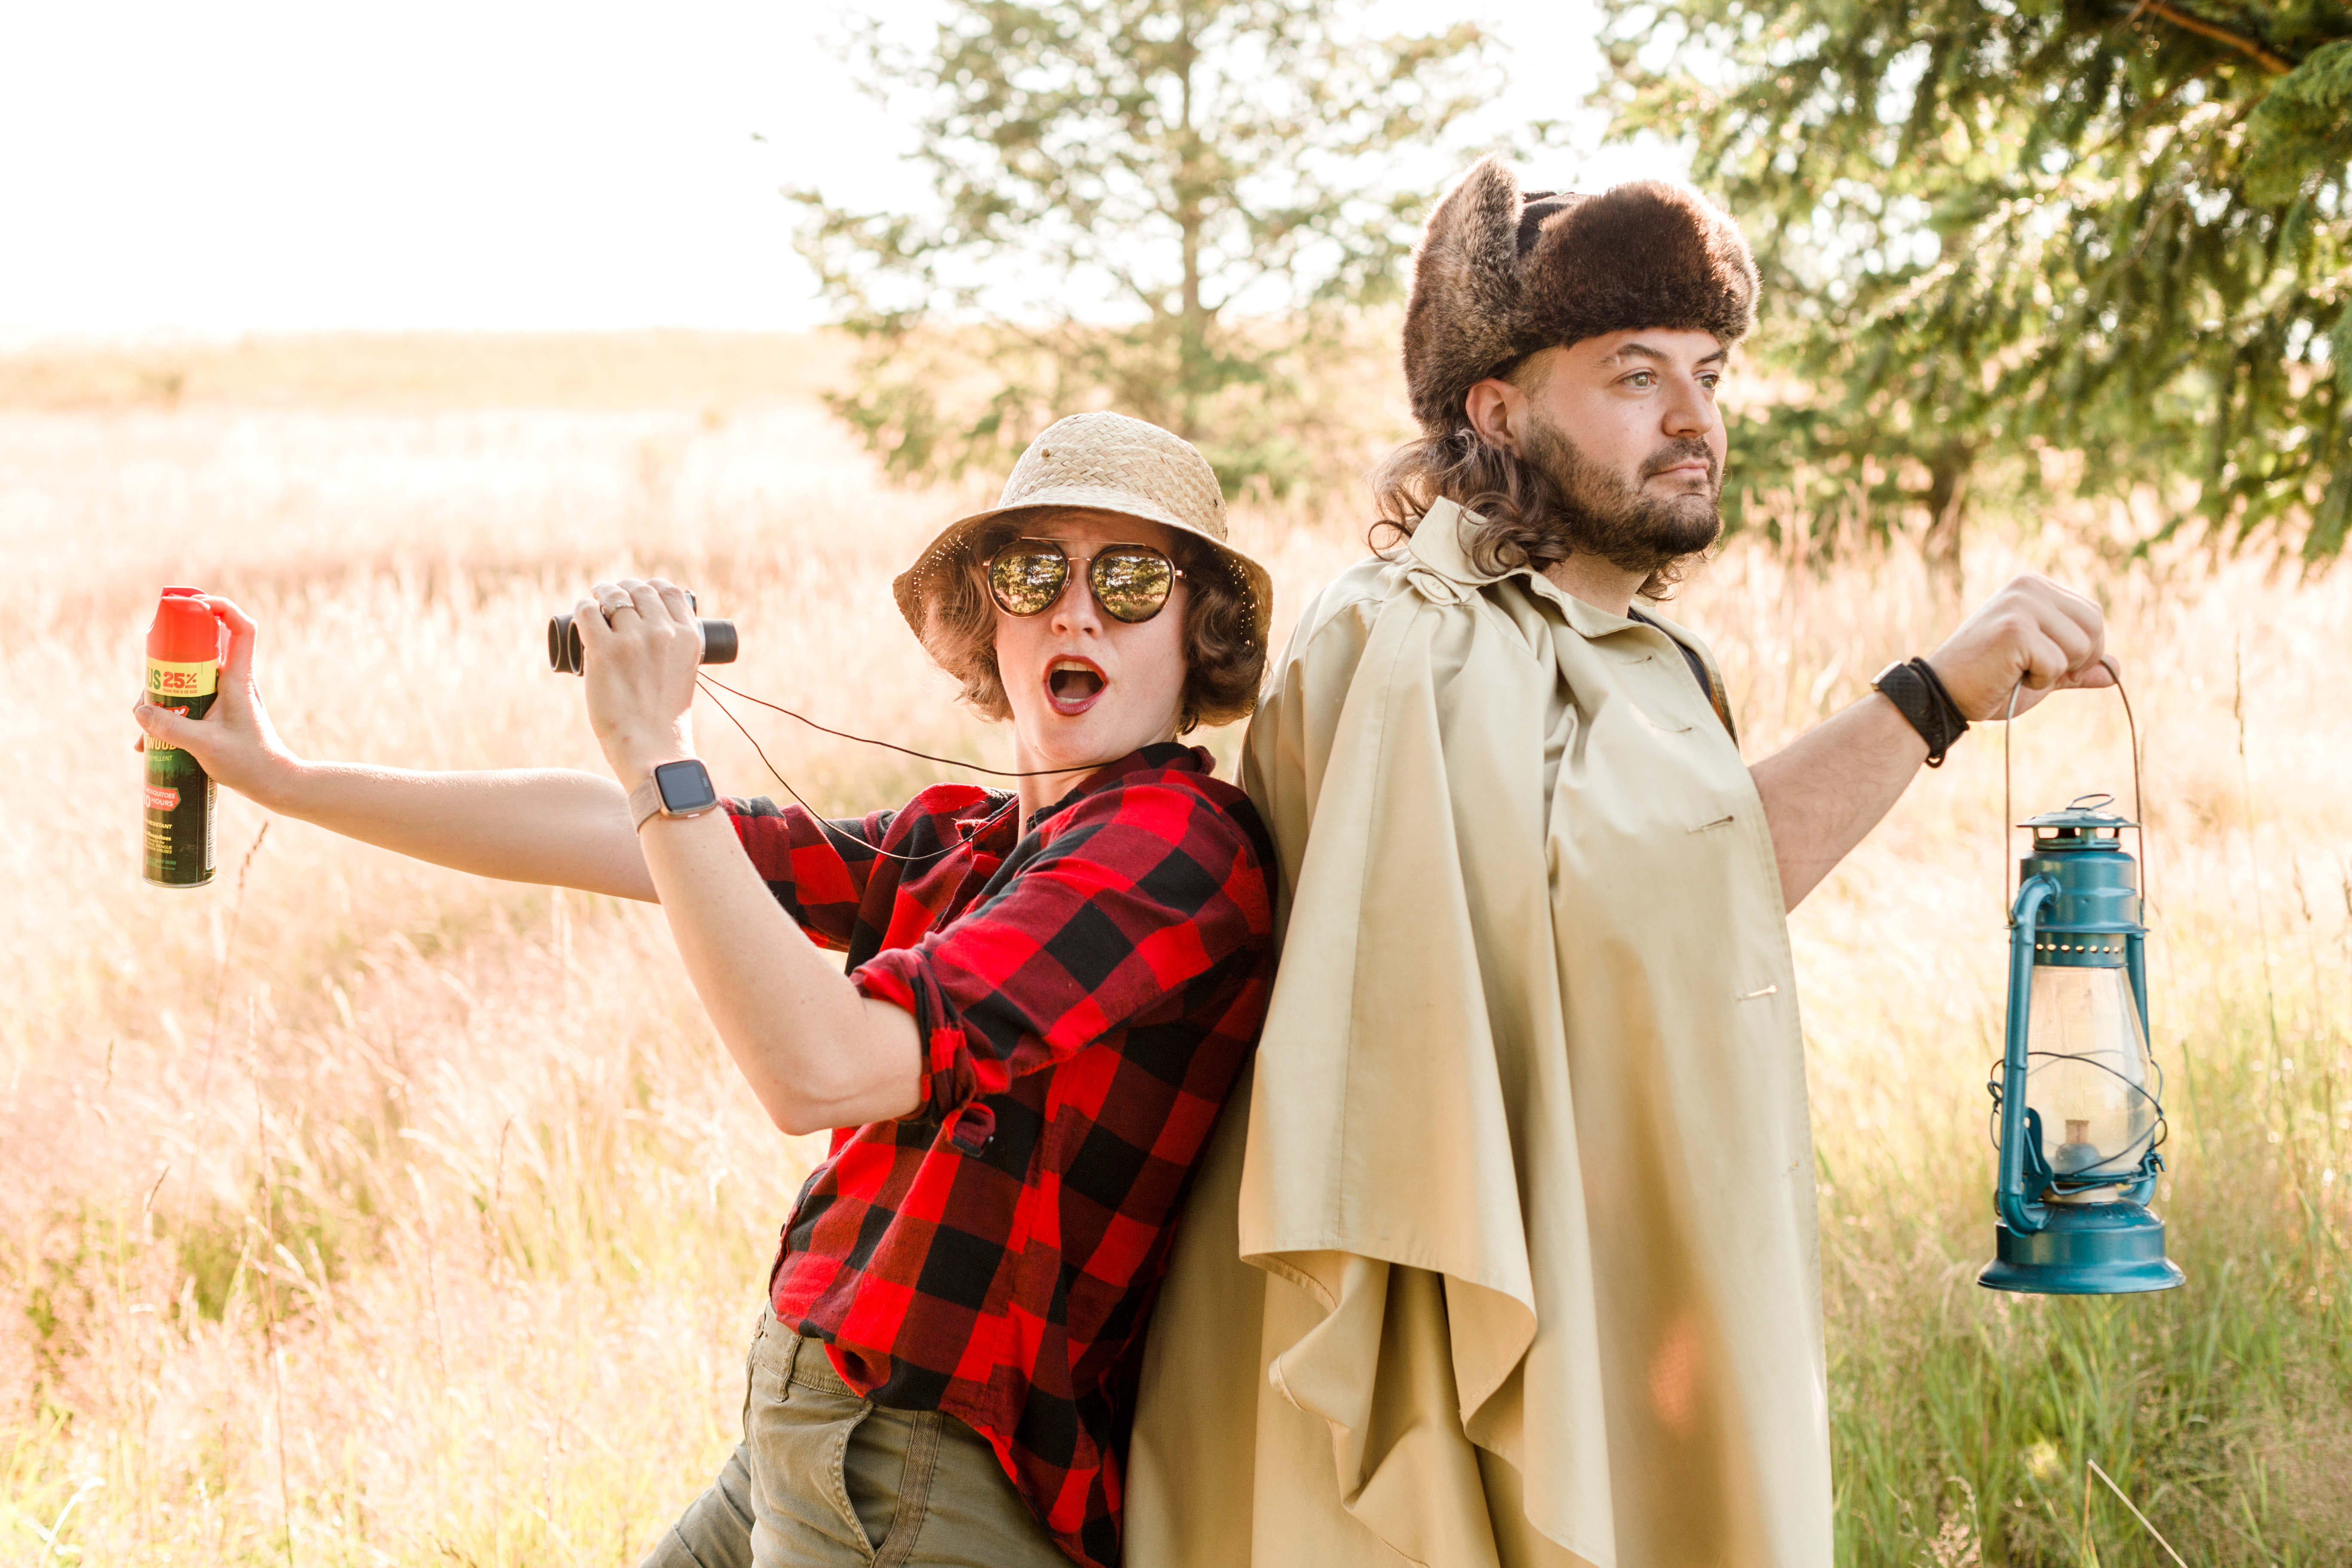 19 Hilarious Engagement Photos Chronicling A Day In The Lives Of This Oregonian Couple